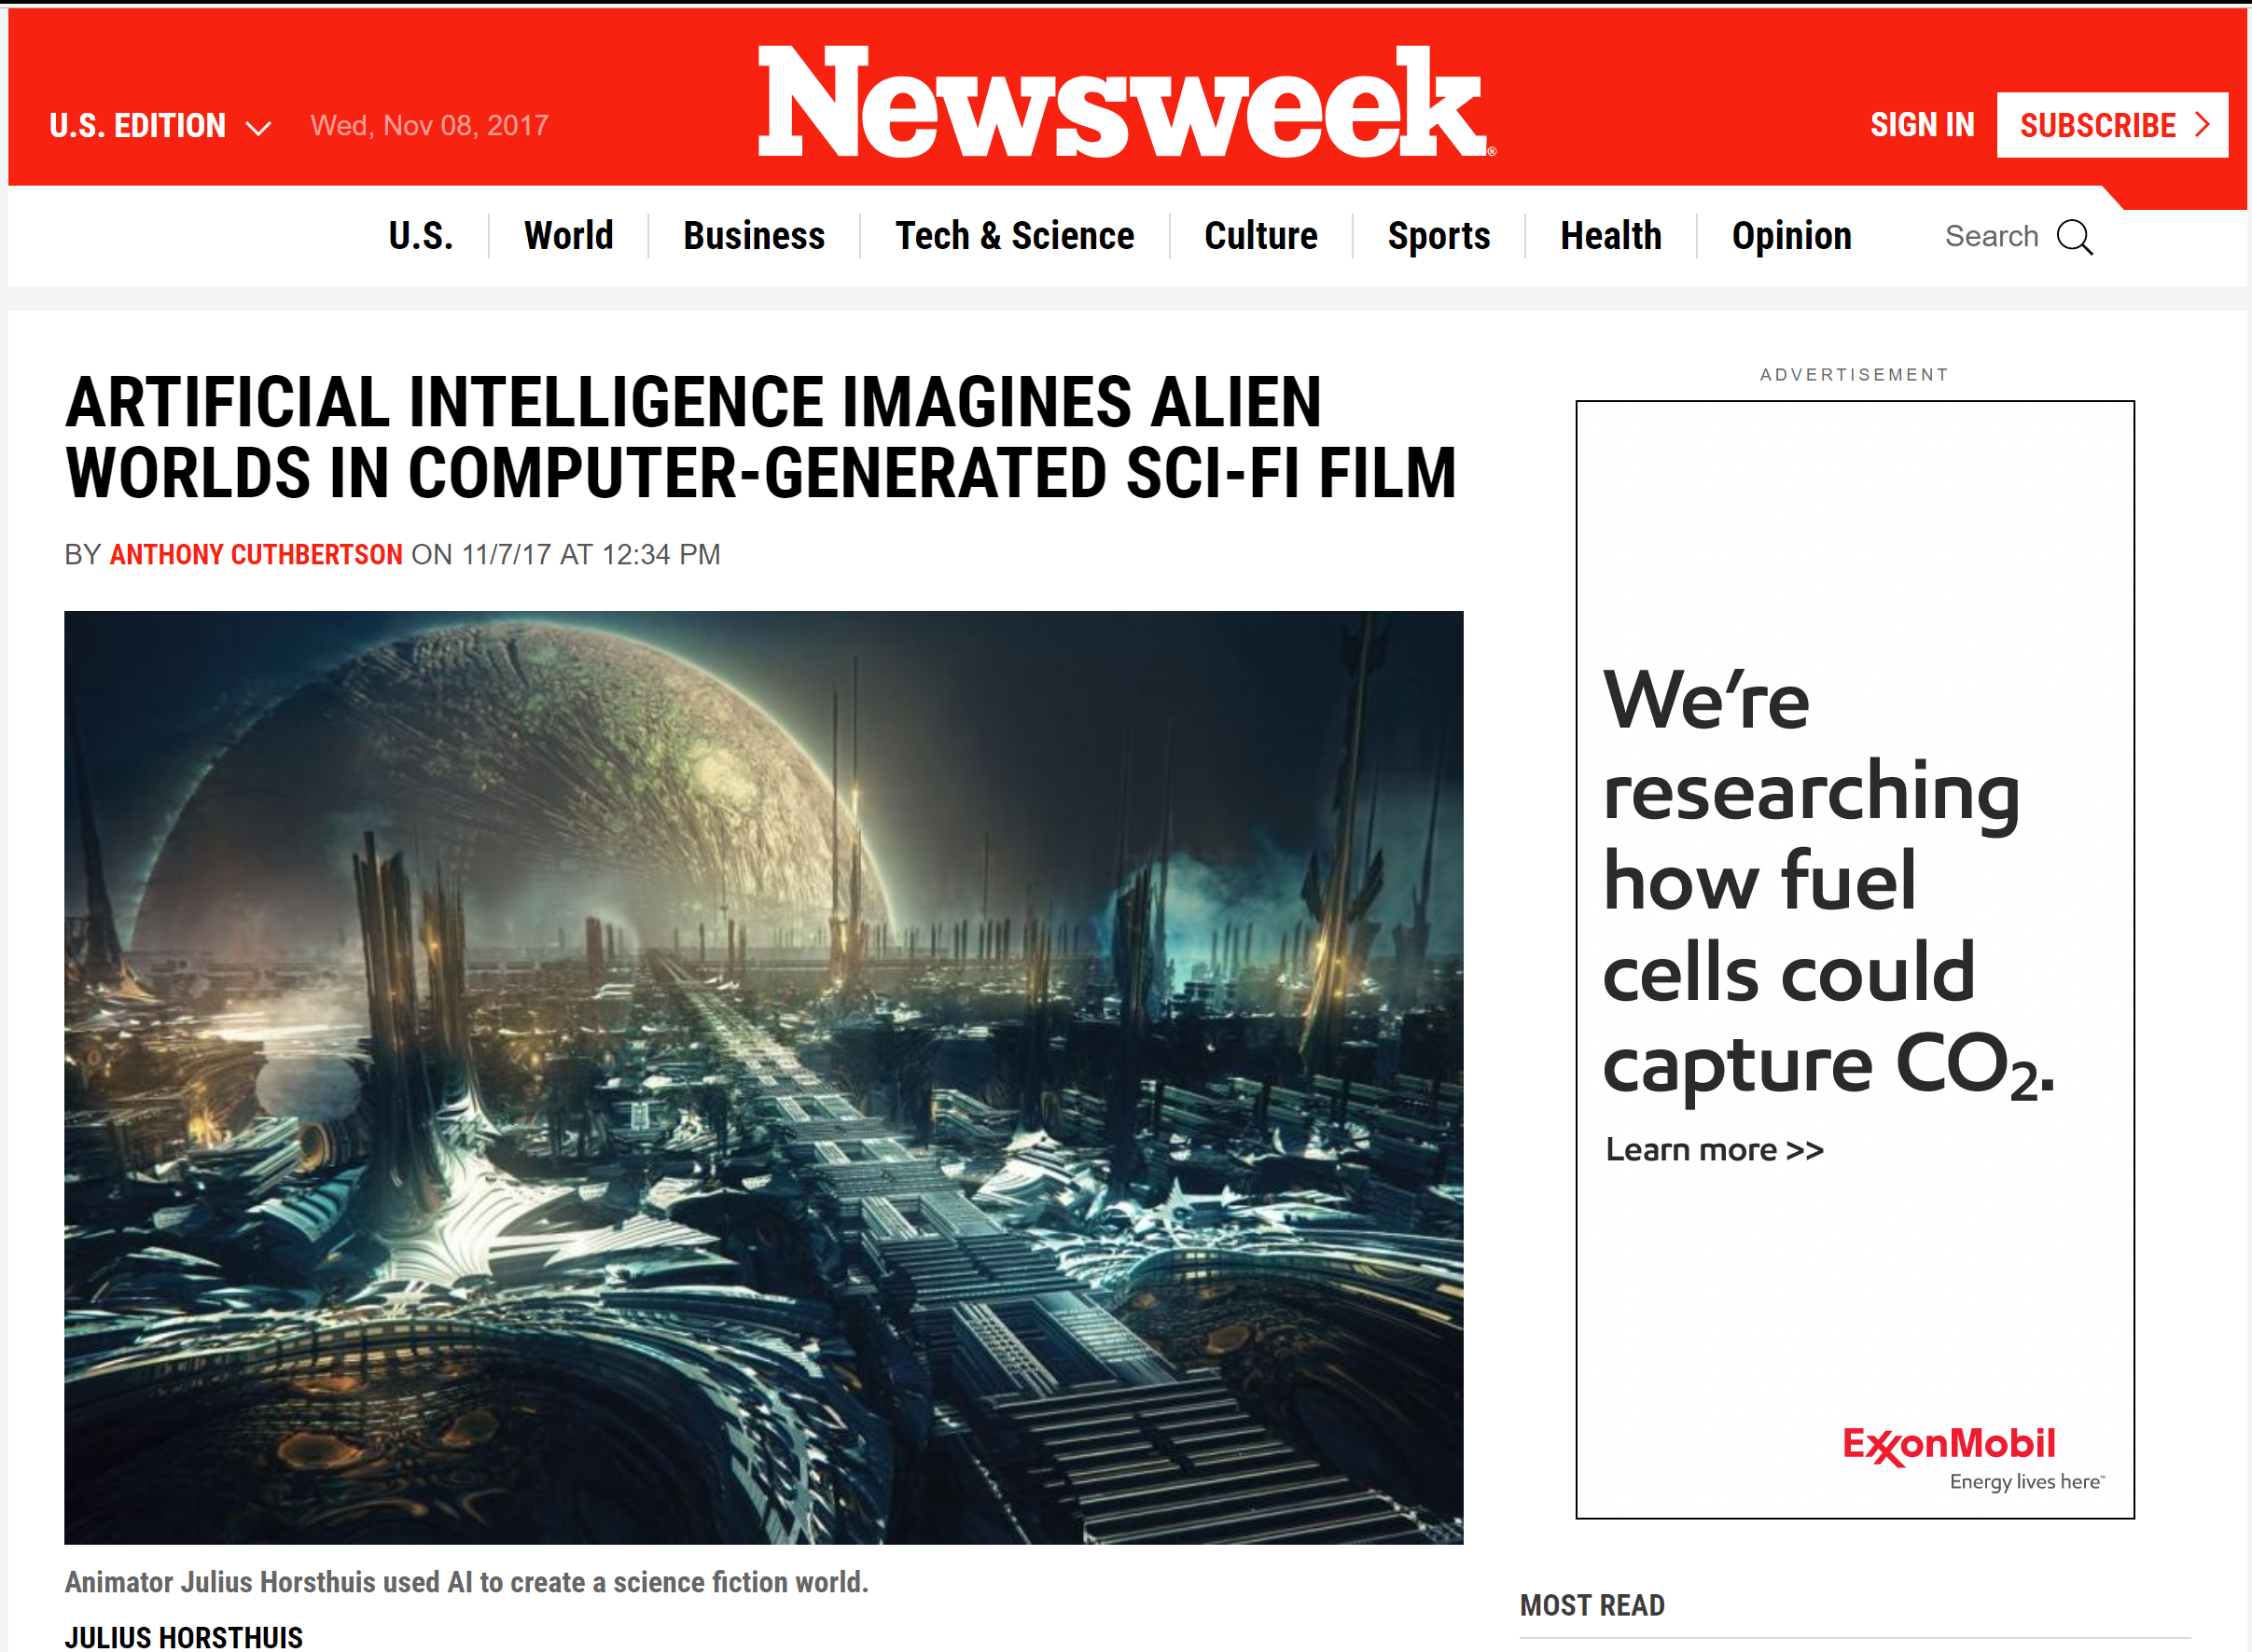 The Newsweek article